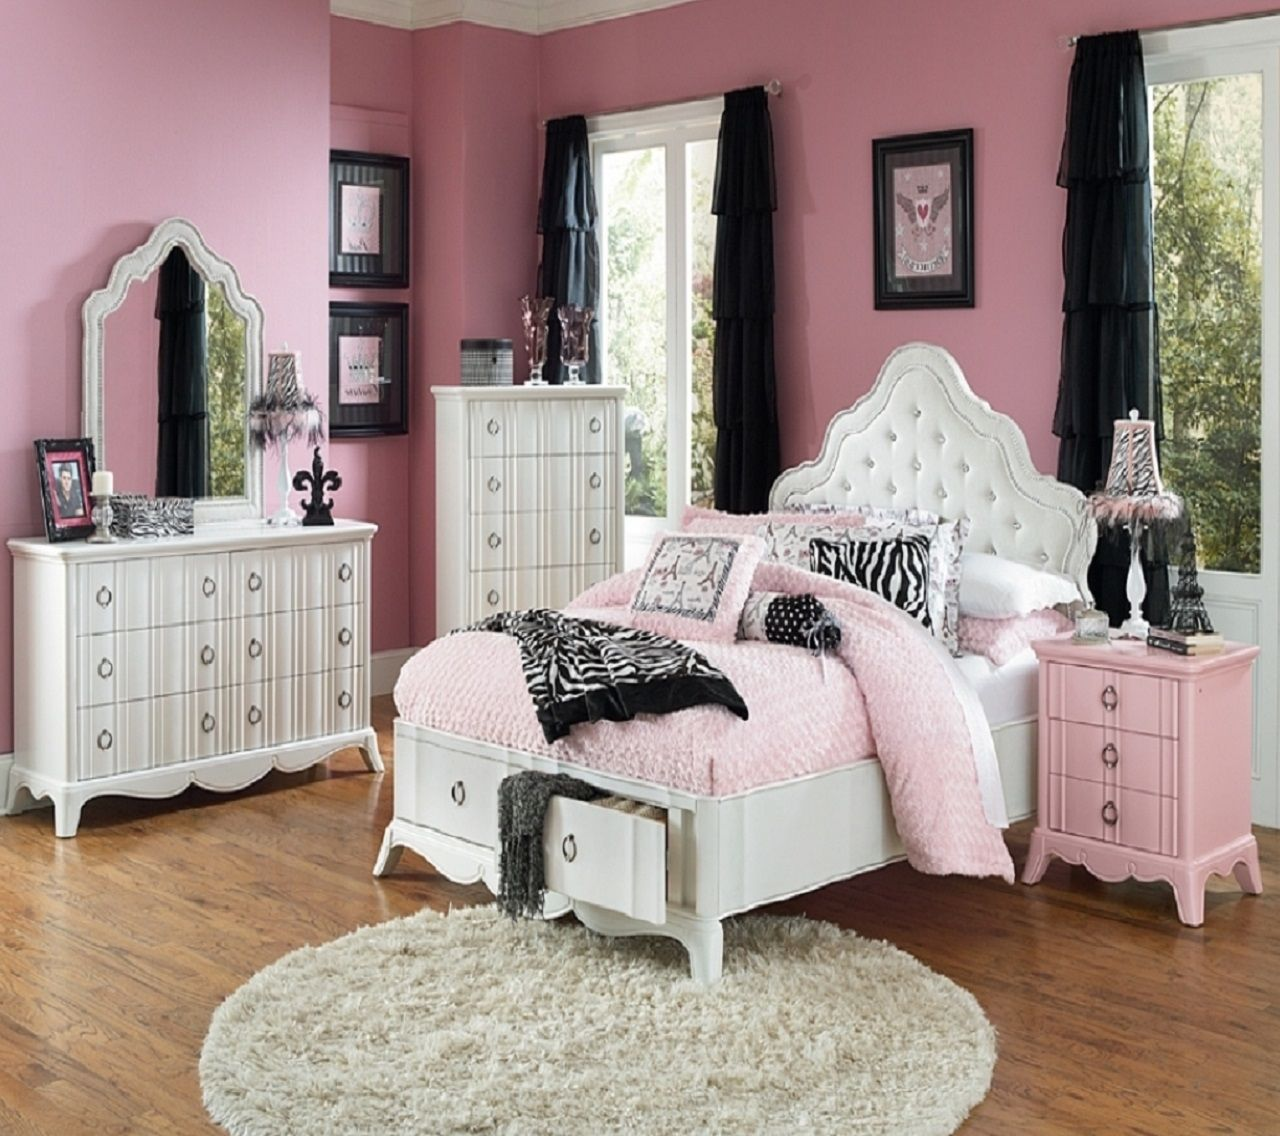 INT. PINK & BLACK BEDROOM MED #EpisodeInteractive #Episode